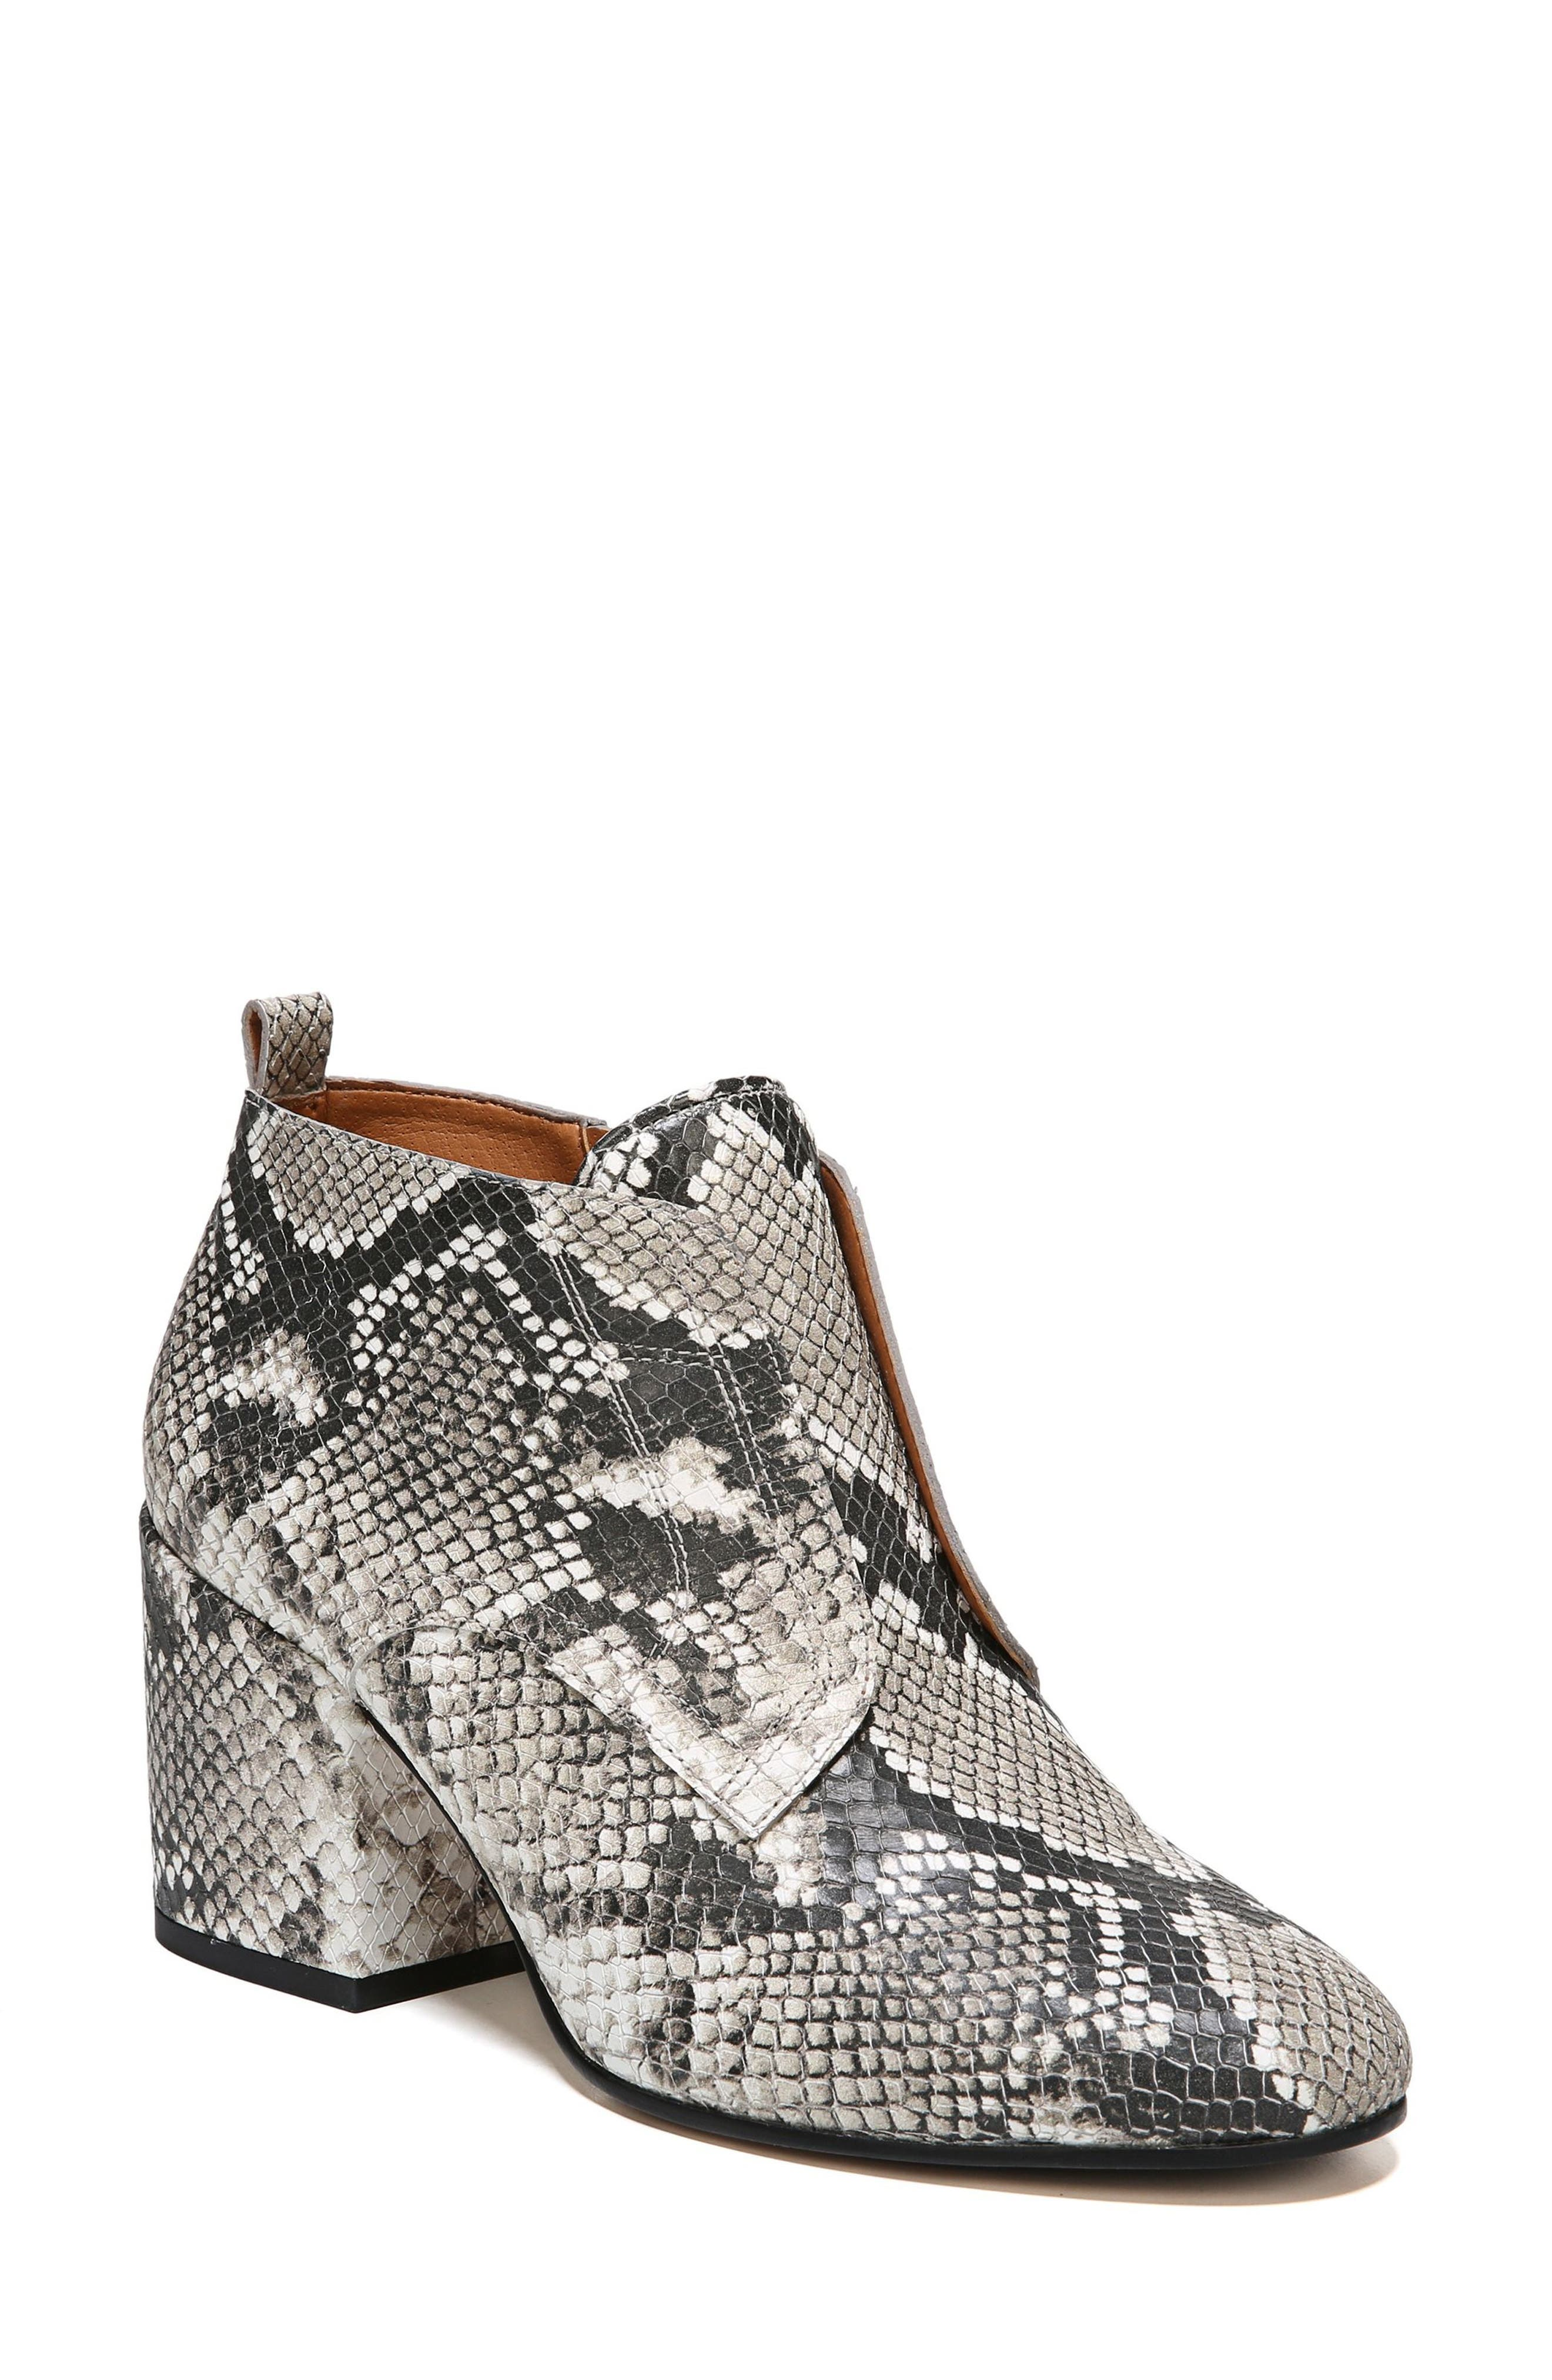 Alfie Bootie,                             Main thumbnail 1, color,                             Natural Snake Leather